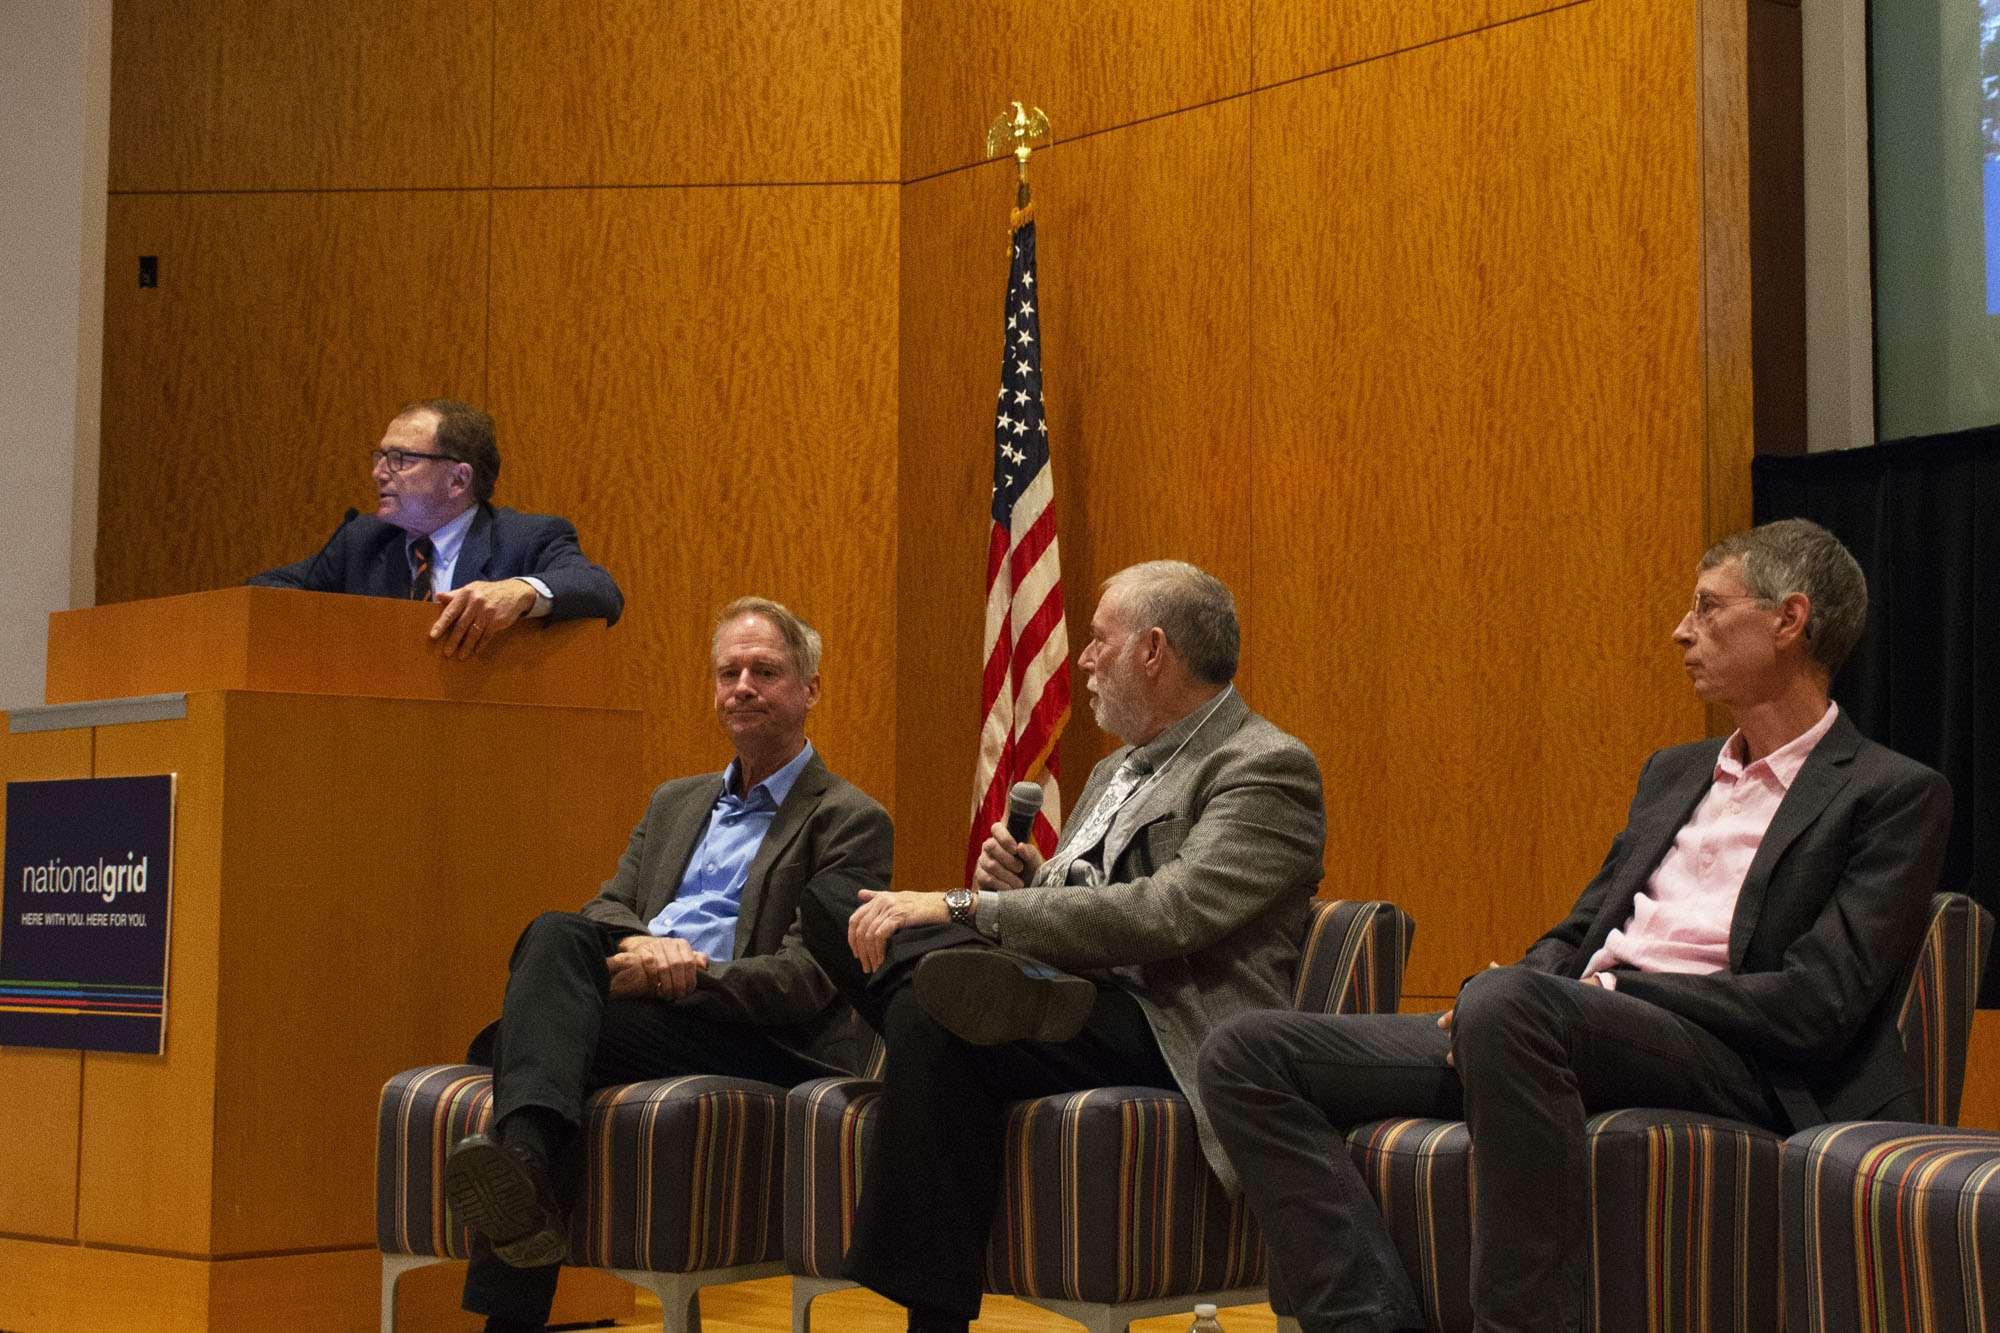 Princeton University Professor Alain Kornhauser leads a session on the key steps and potential obstacles to automated vehicle deployment. (L to R) Kornhauser; Mark Geistfeld, Professor, NYU School of Law; Sam Schwartz, President, Sam Schwartz Engineering; Bruce Schaller, Principal, Schaller Consulting.